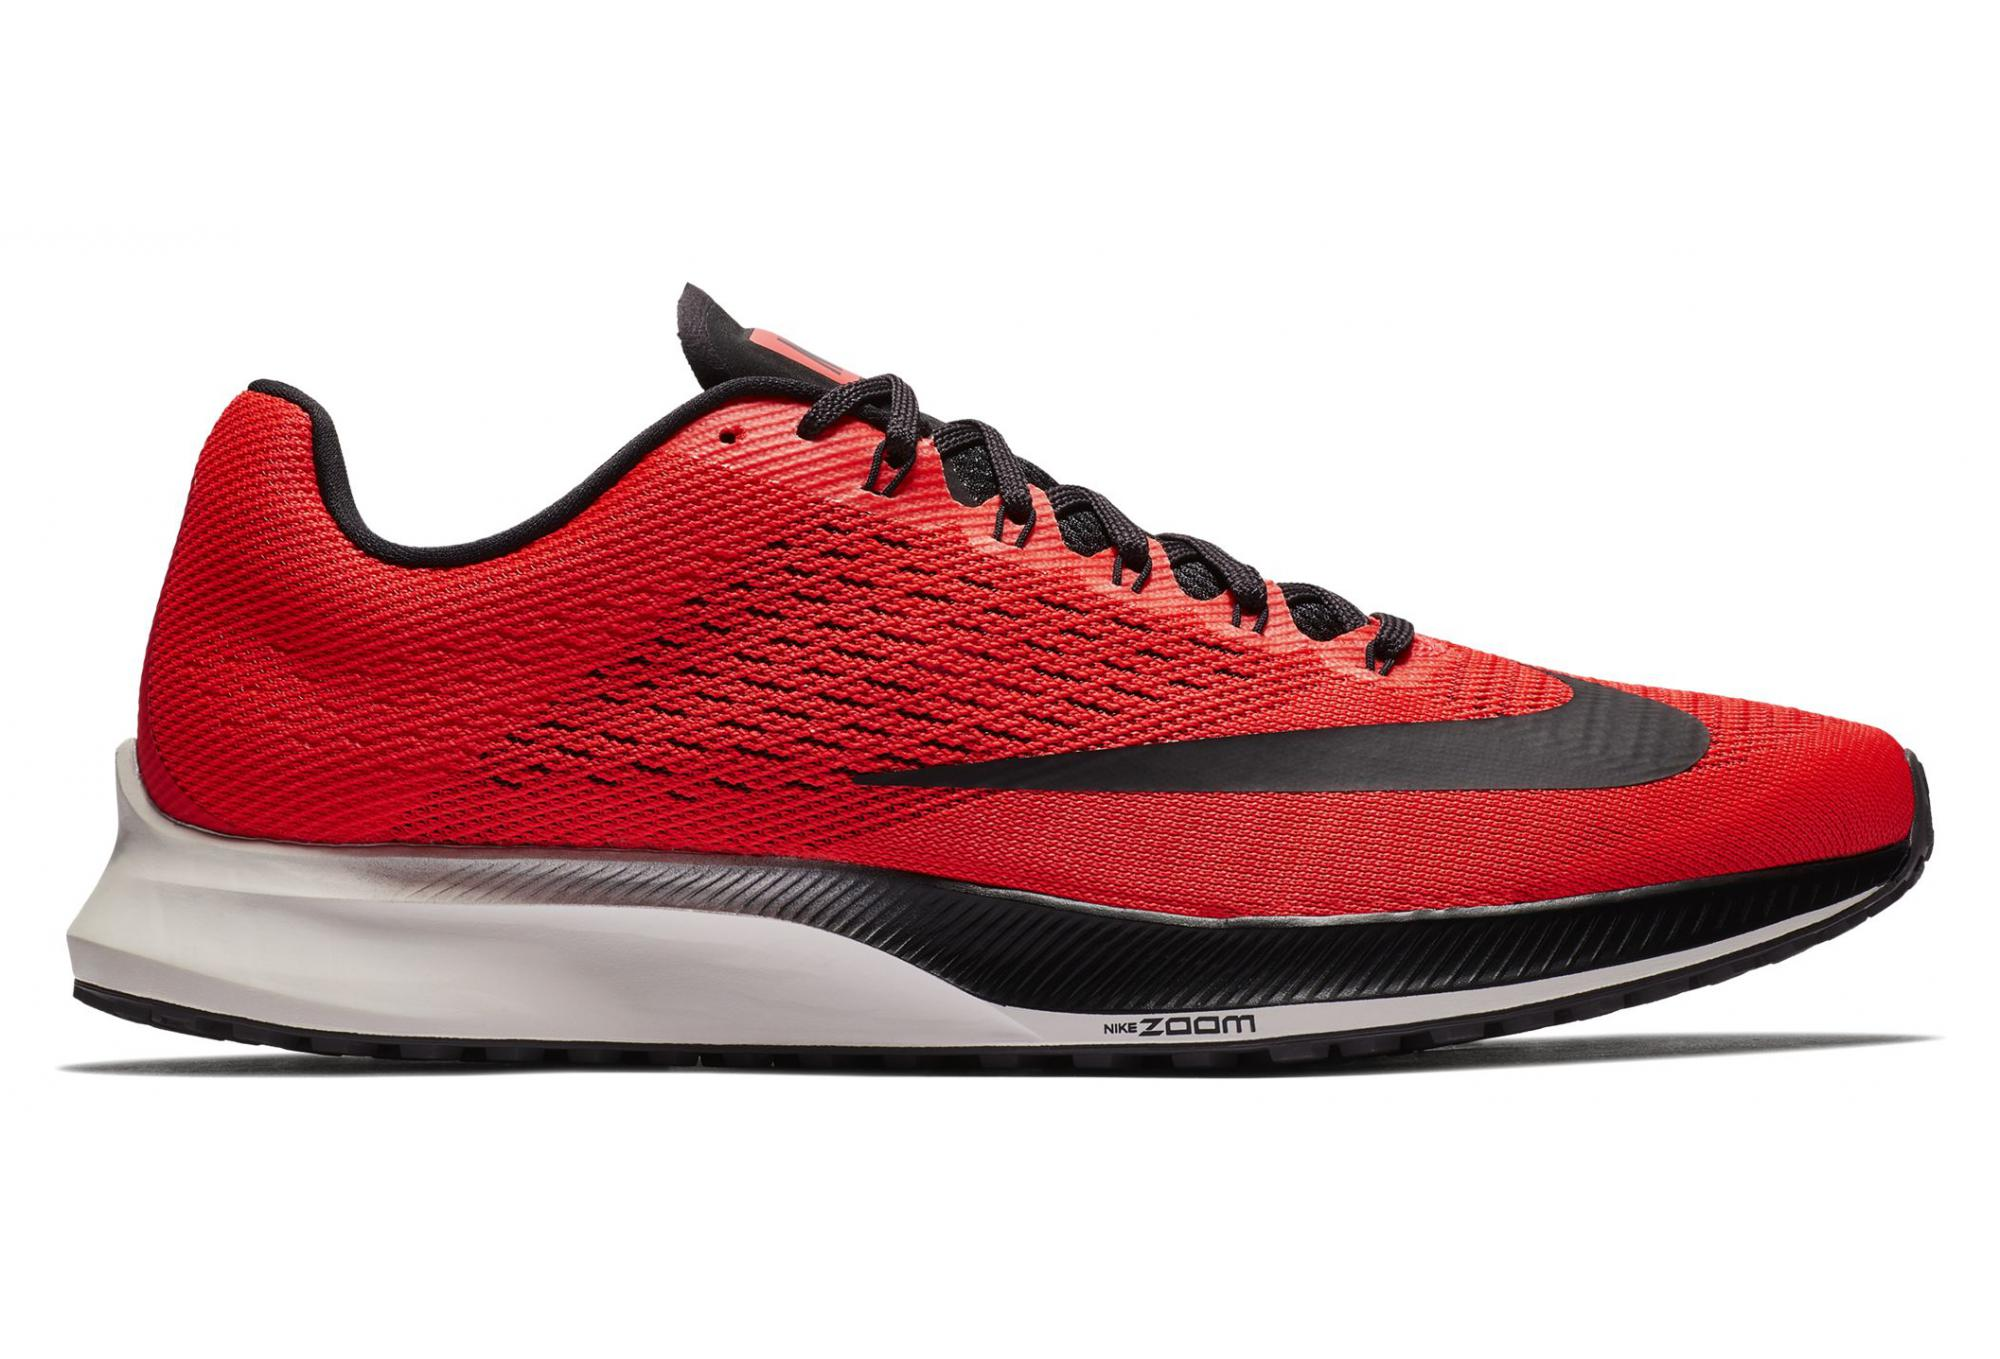 5a551220d1021 Nike Shoes Air Zoom Elite 10 Red Black Men